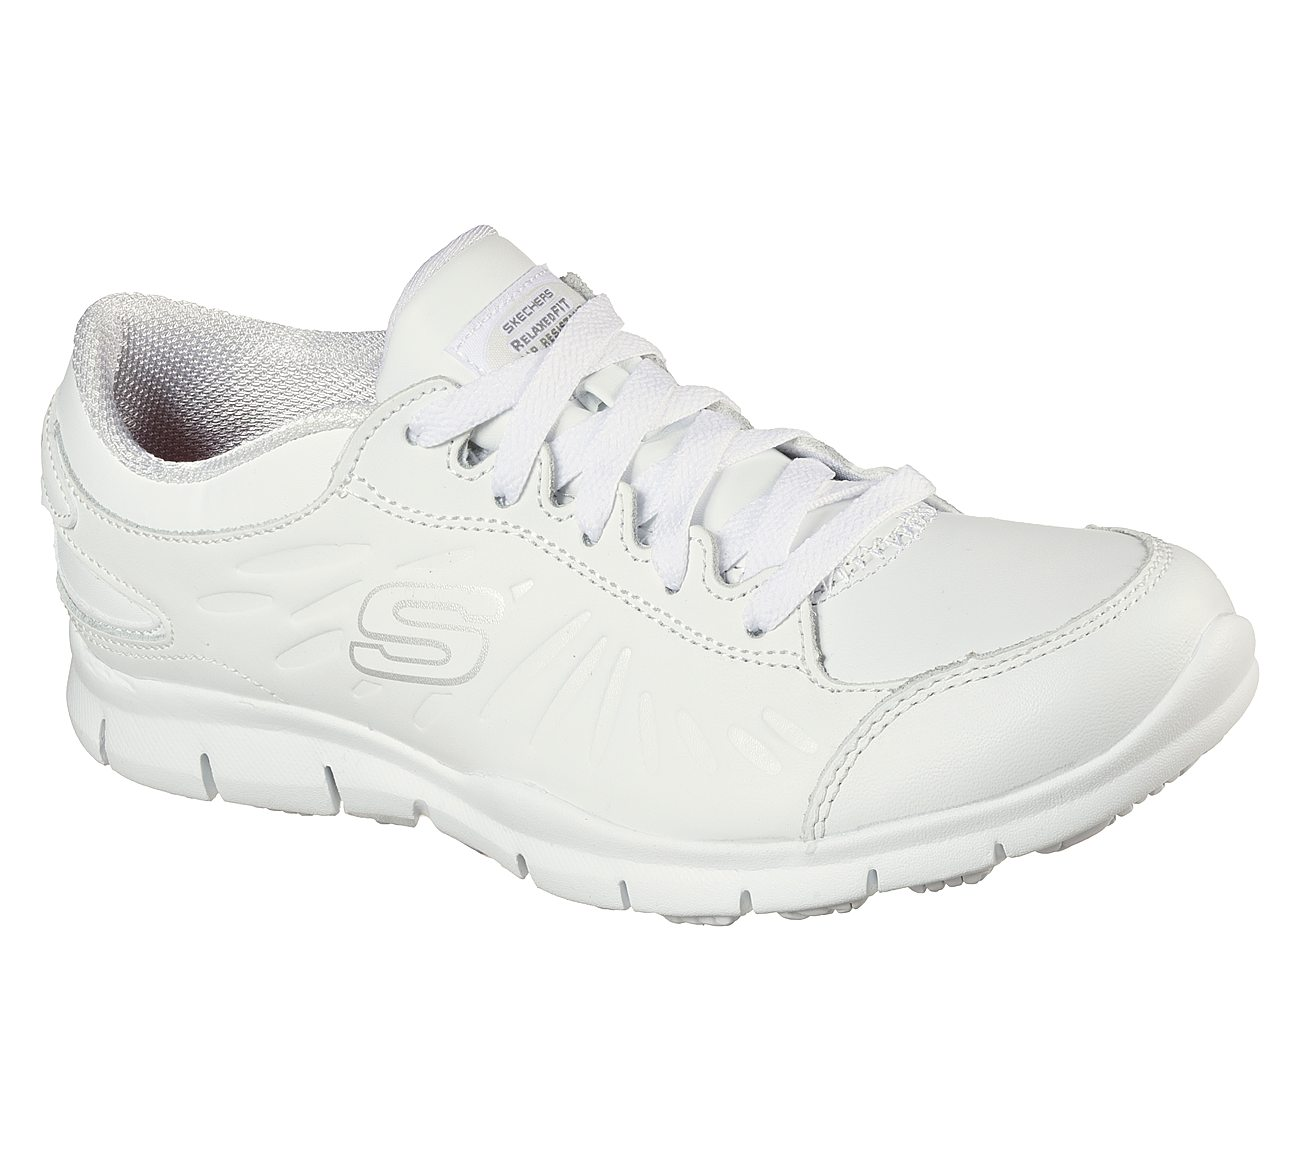 skechers slip resistant work shoes